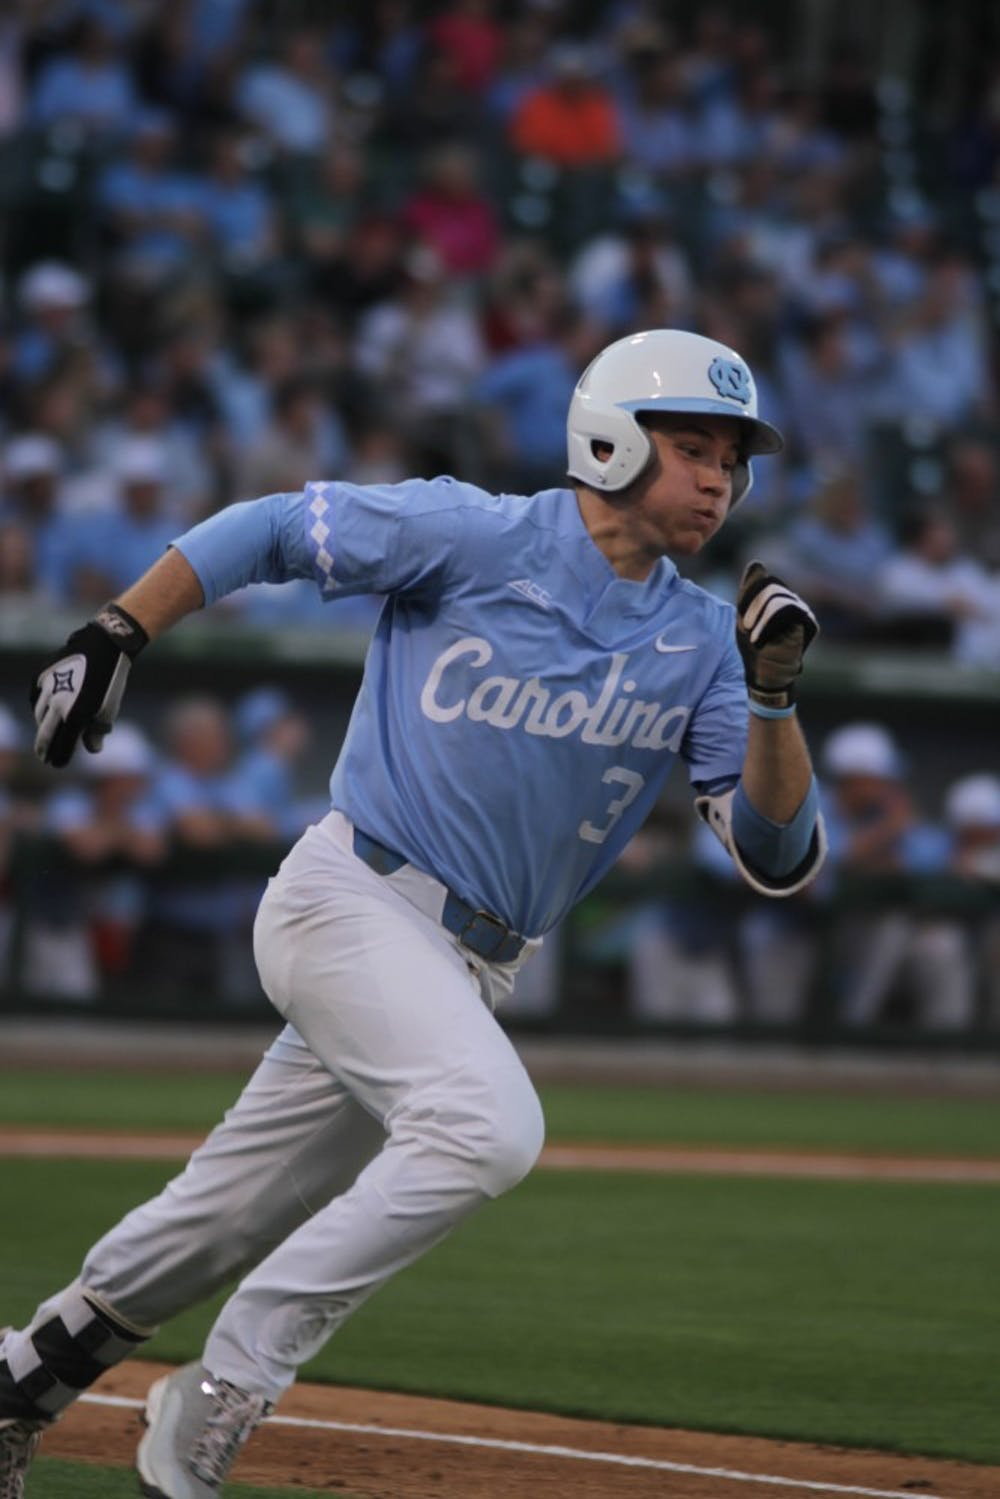 UNC baseball destroys South Carolina, 20-5, in Charlotte for ninth straight win